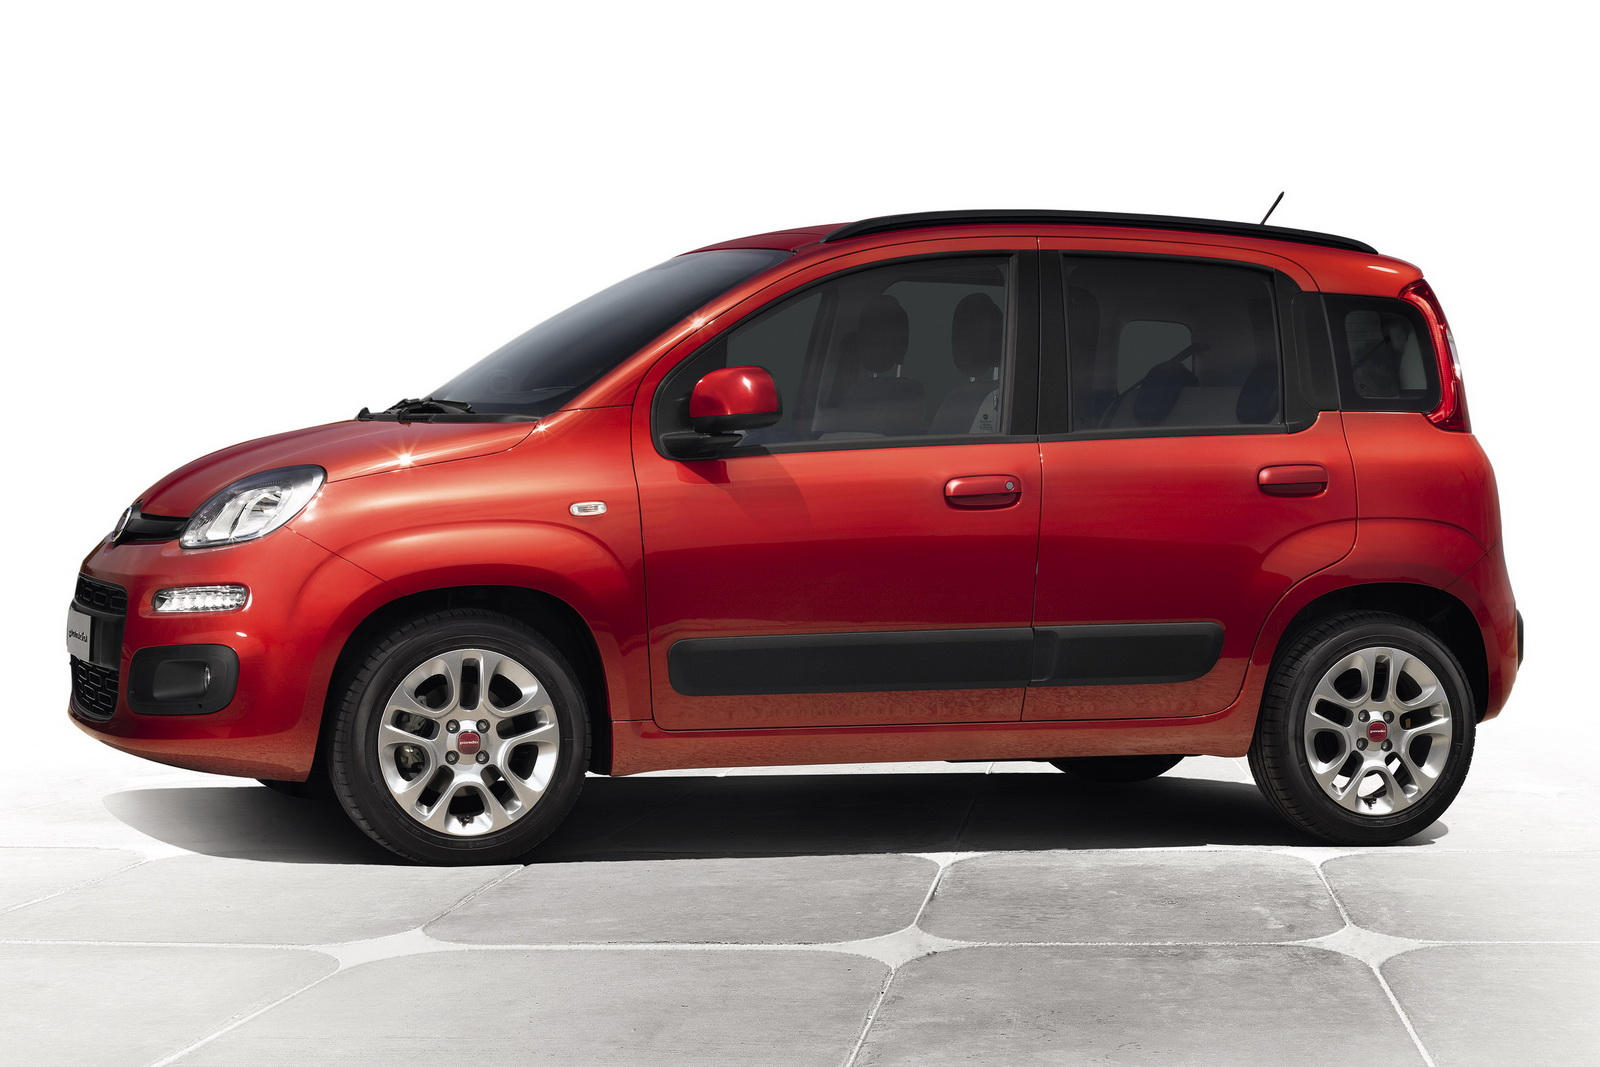 Fiats 2012 nuova panda 2 2012 Nuova Panda   A Short Car Review